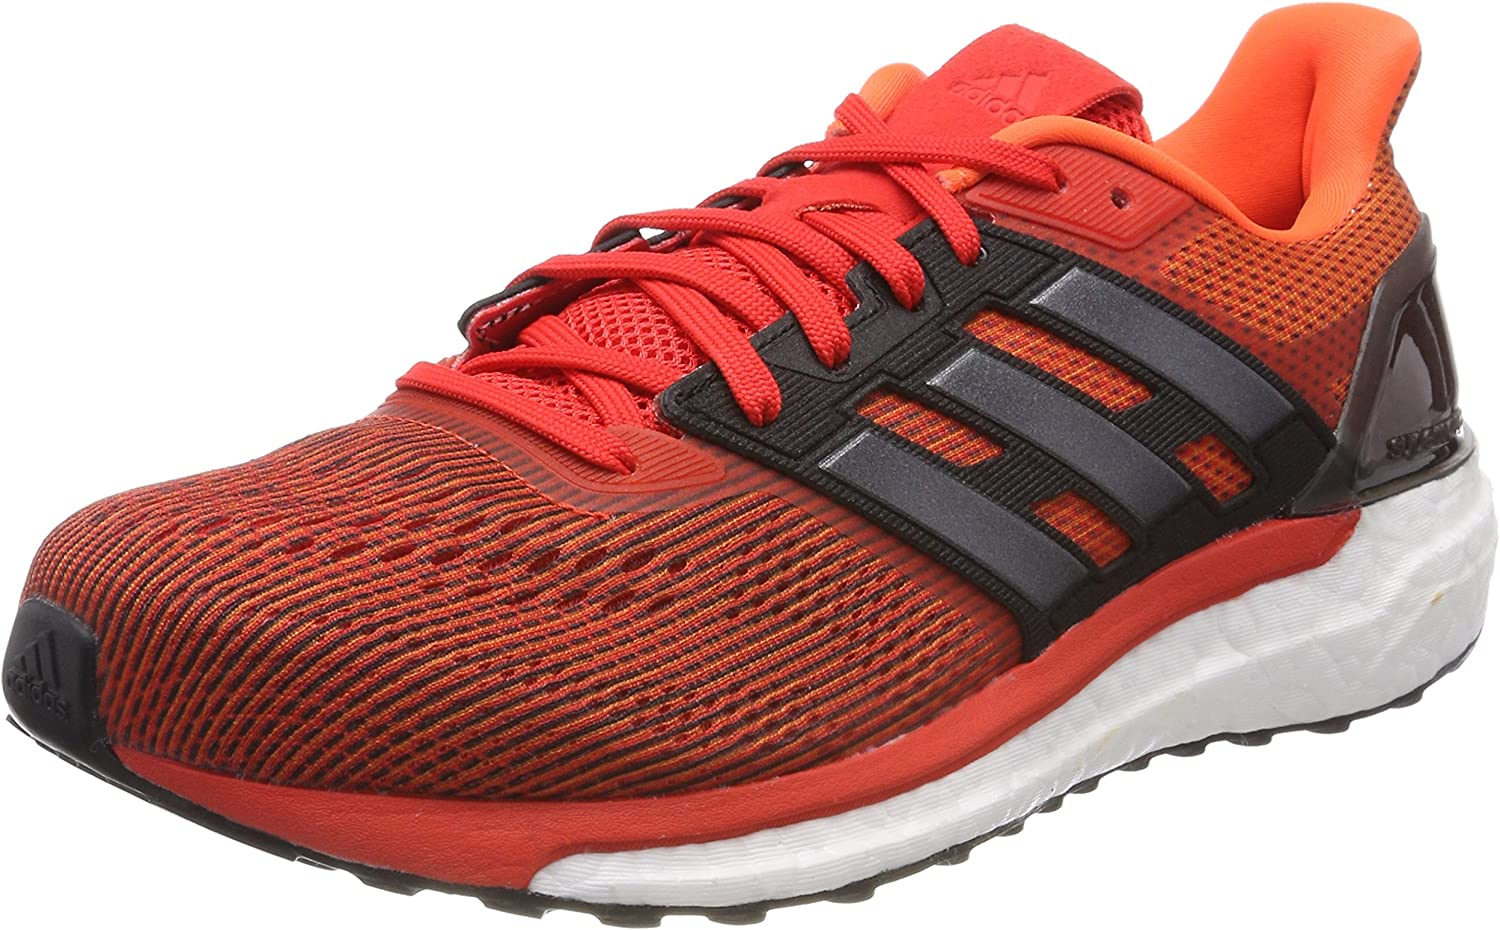 Adidas Men's Supernova Competition Running shoes